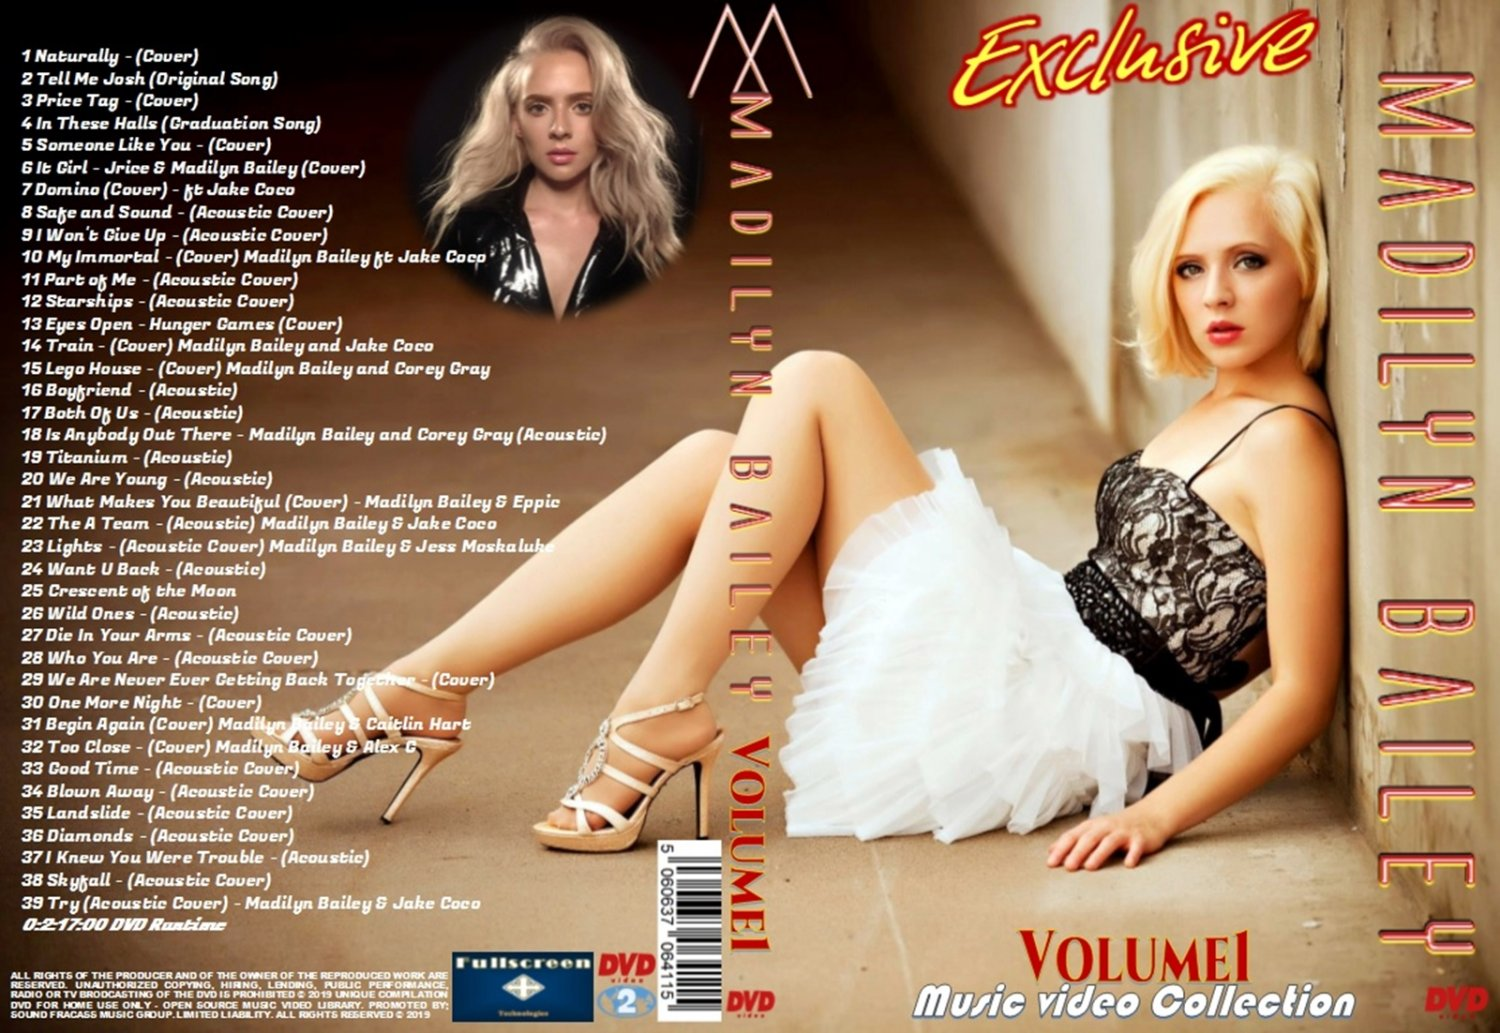 Madilyn Bailey Music Video DVD Volume1